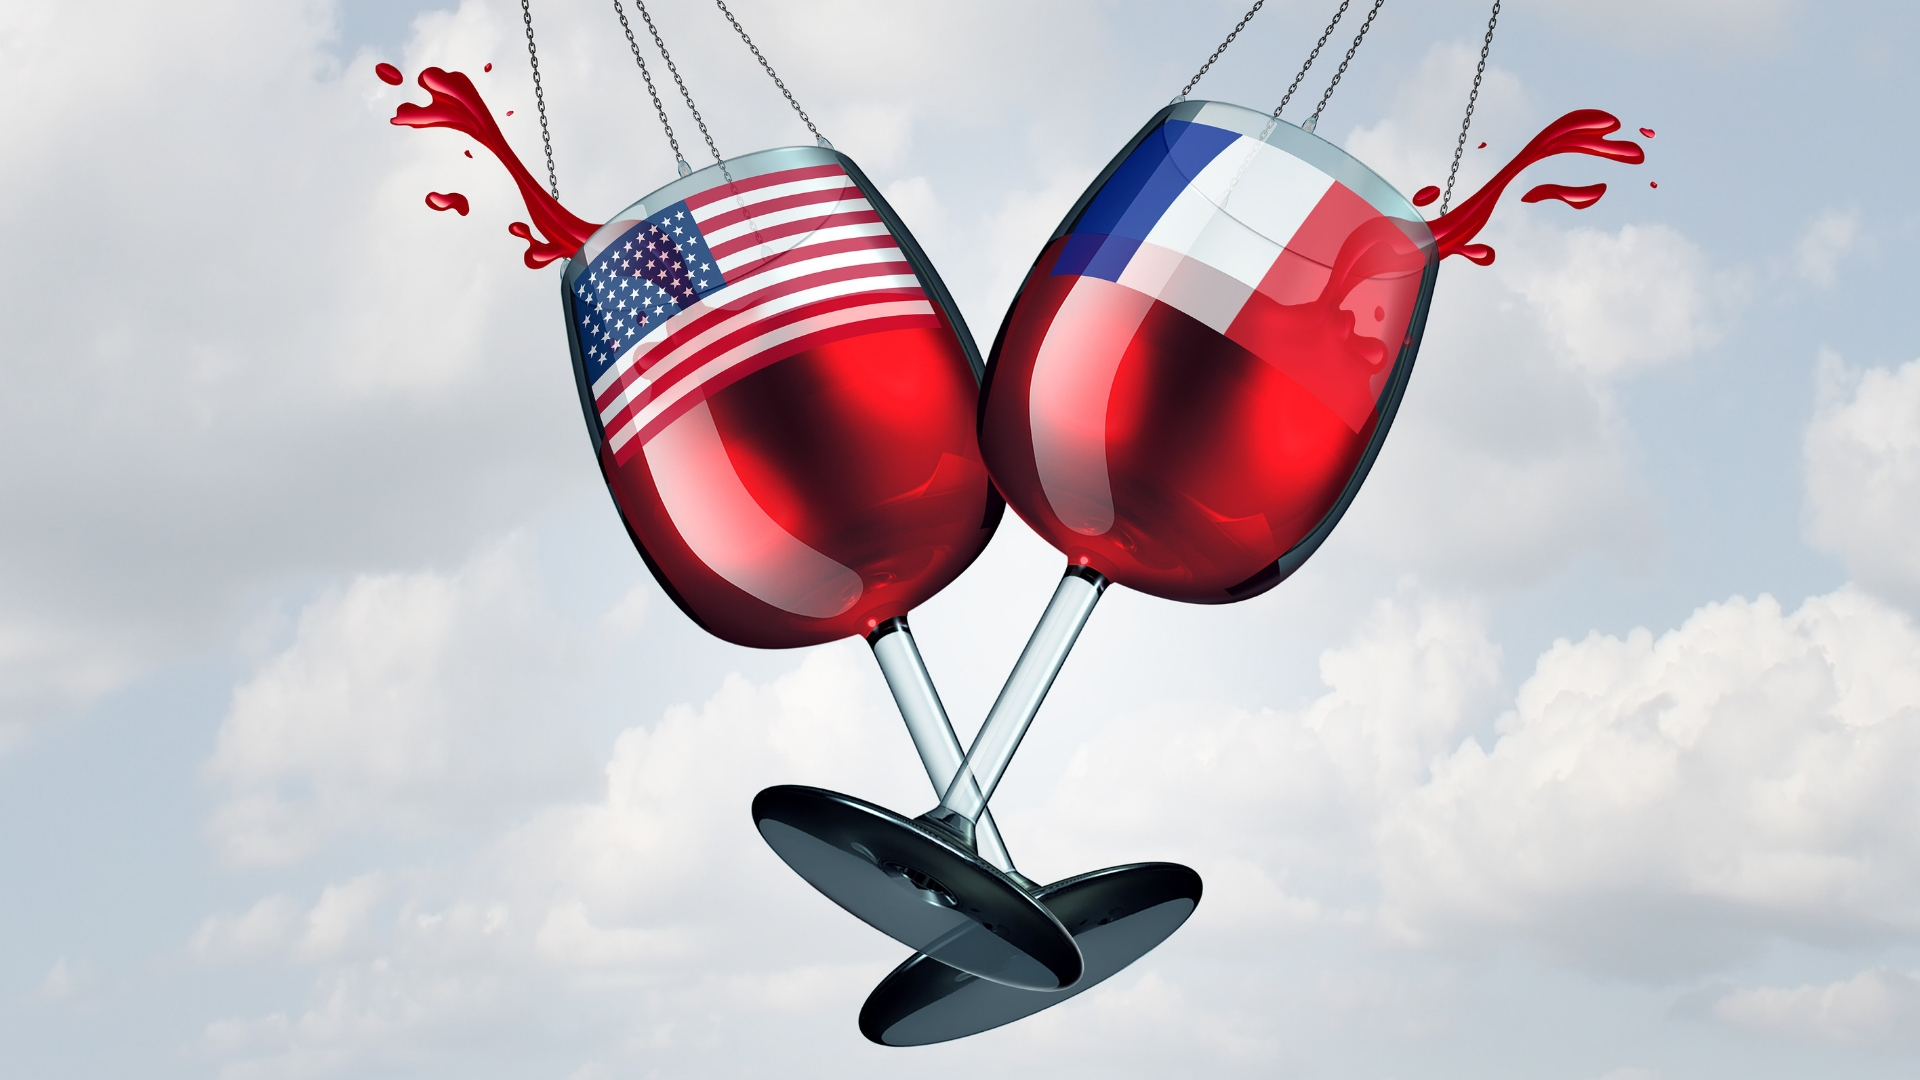 US-France Trade War? 5 Geopolitical Effects You Need to Know